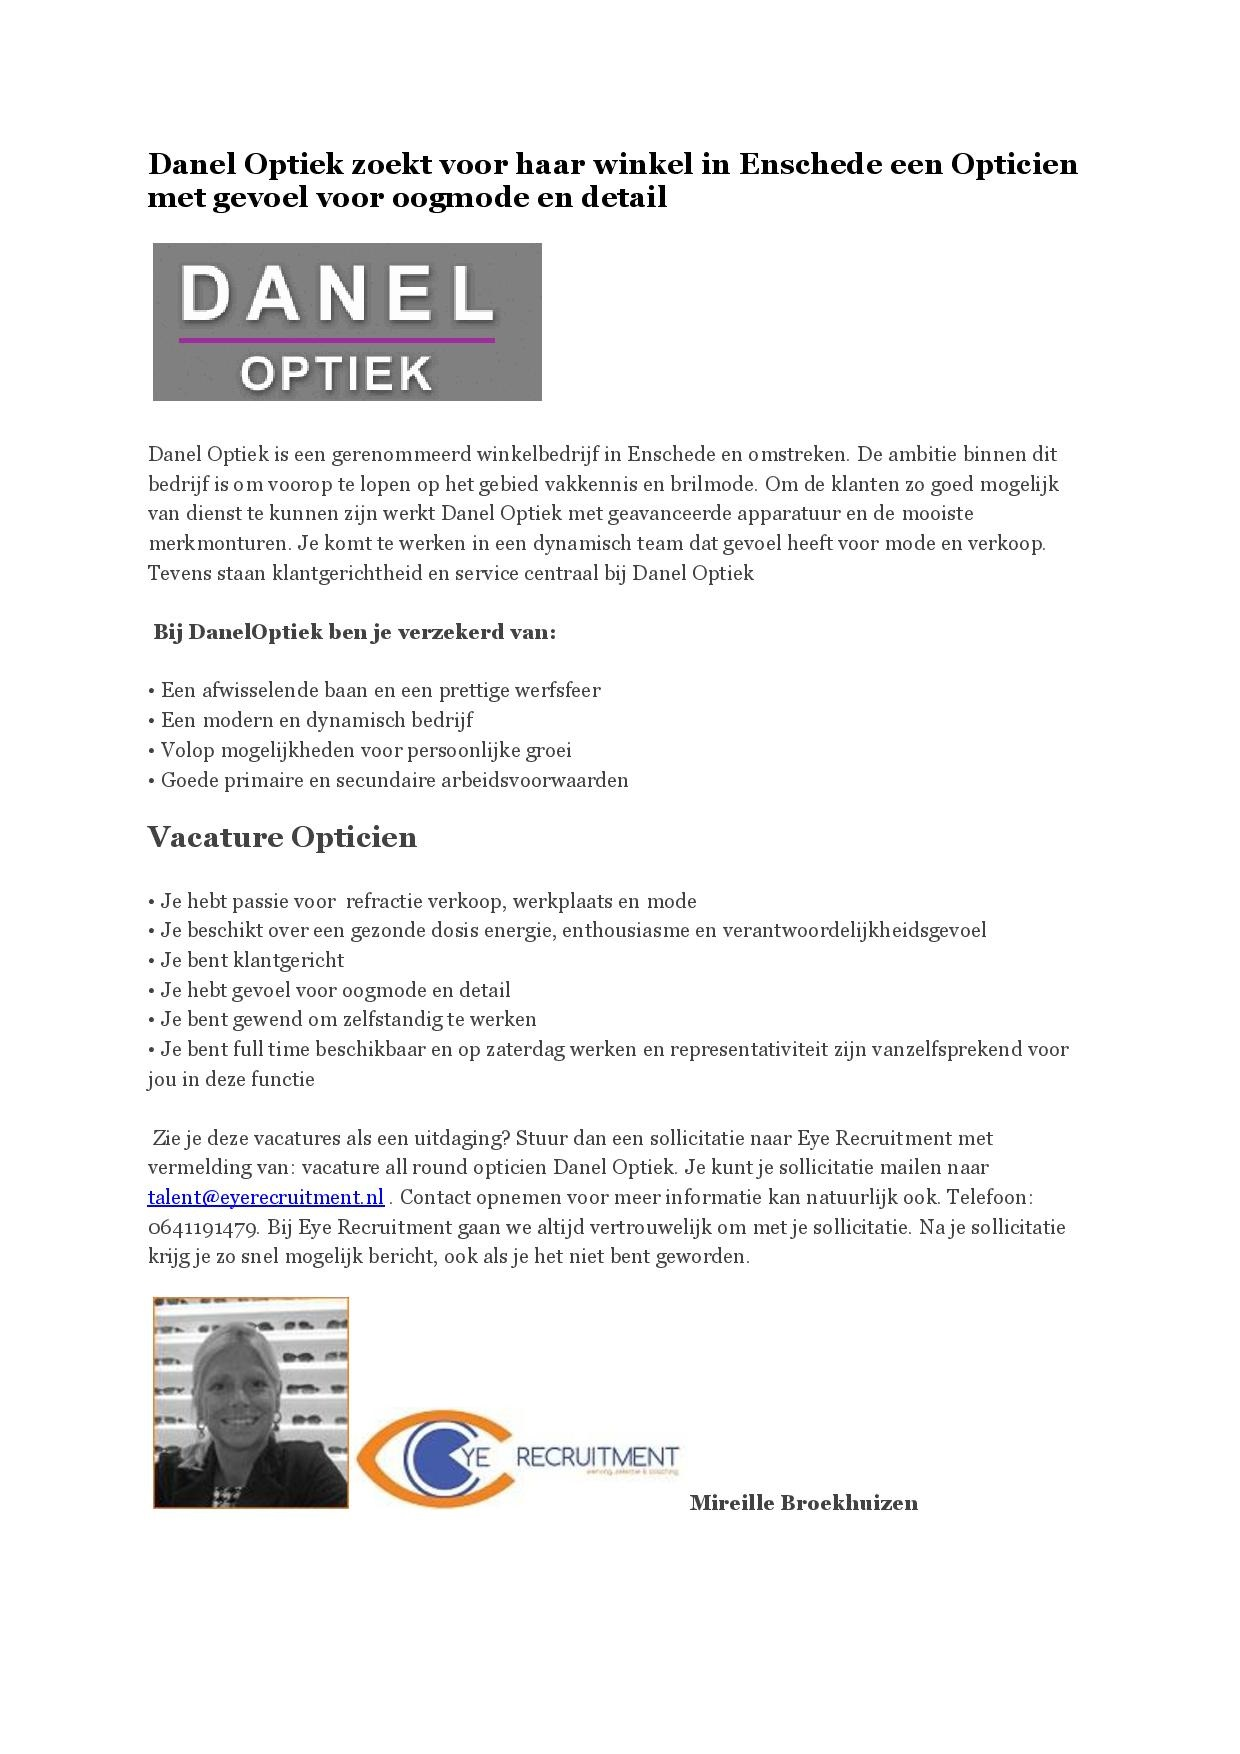 Advertentie Danel Optiek allround opticien-page-001